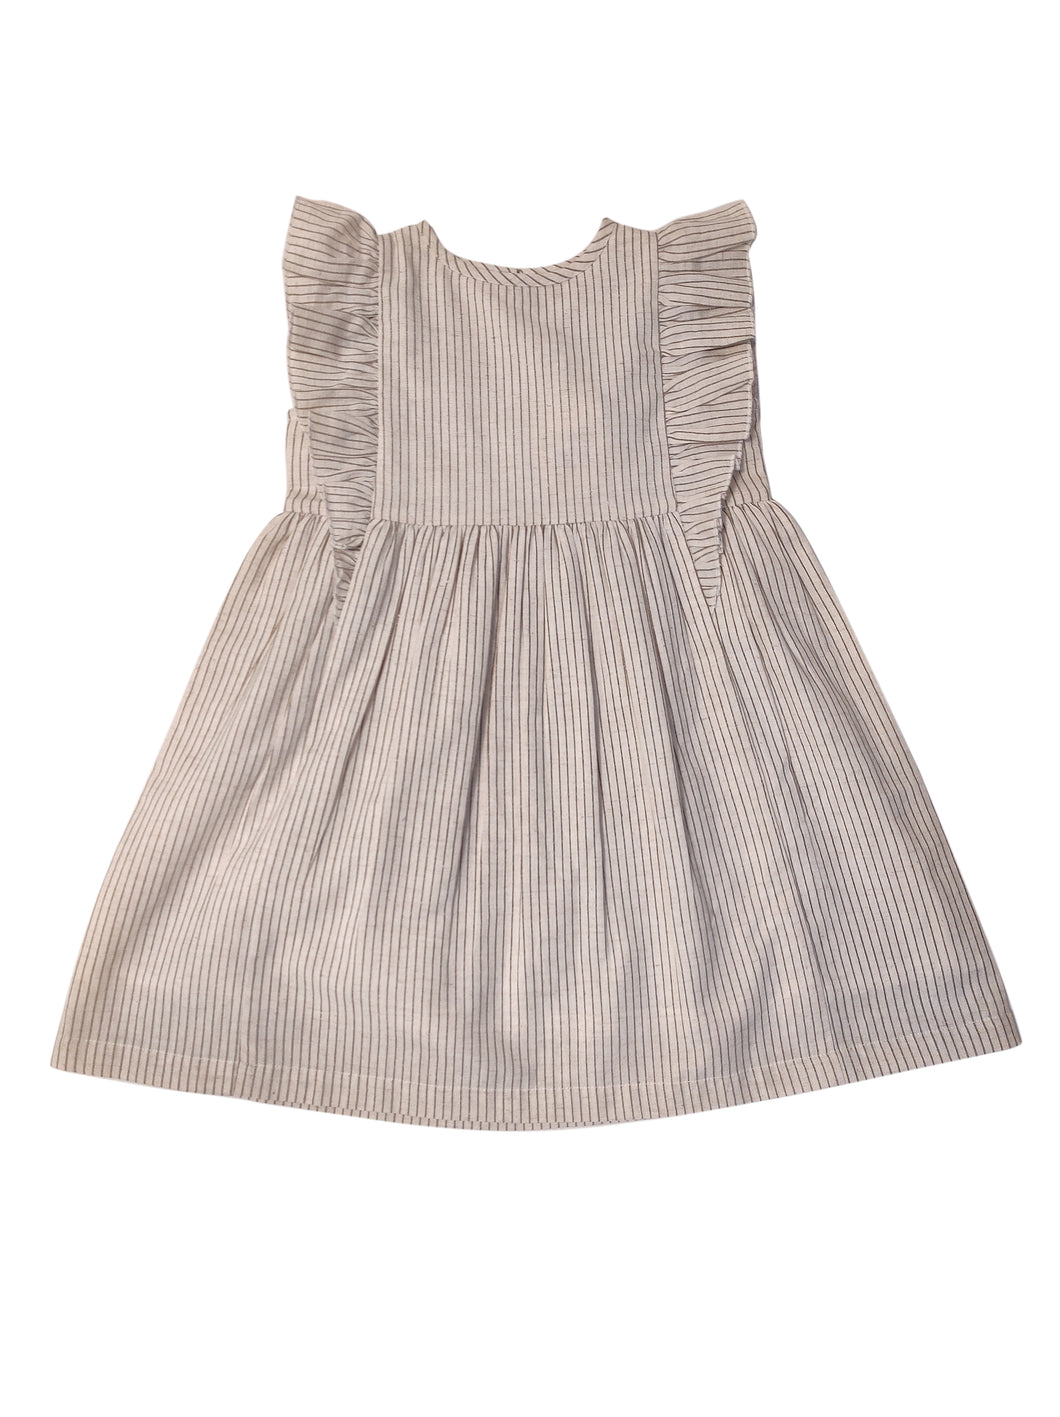 Ecru and Grey Pin Stripe Flutter Sleeves Dress (YB1886)